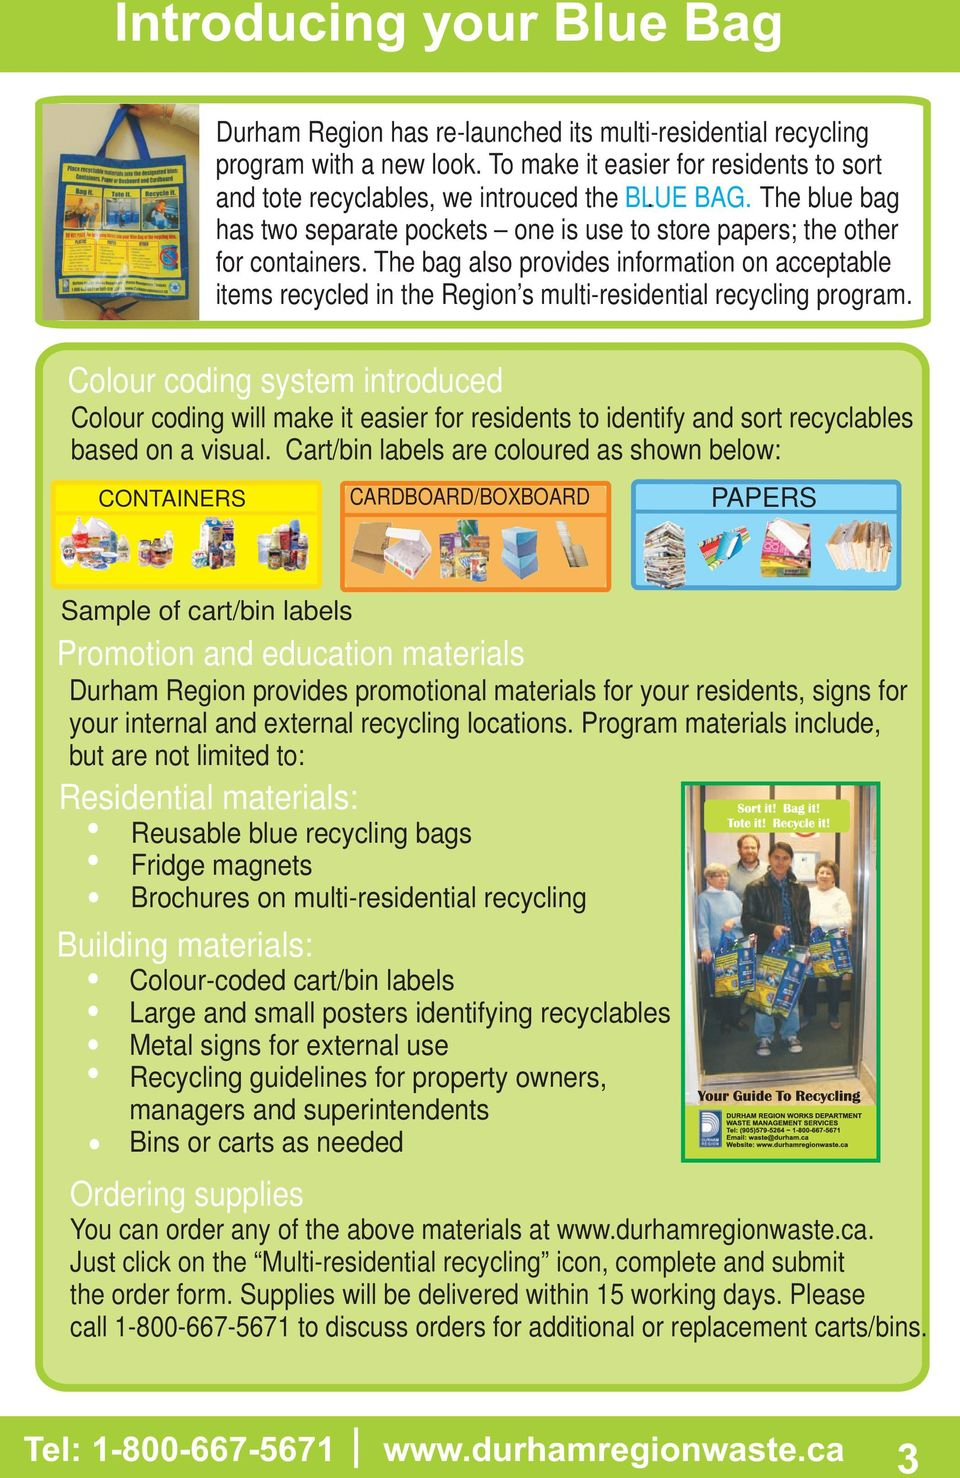 The bag also provides information on acceptable items recycled in the Region s multi-residential recycling program.